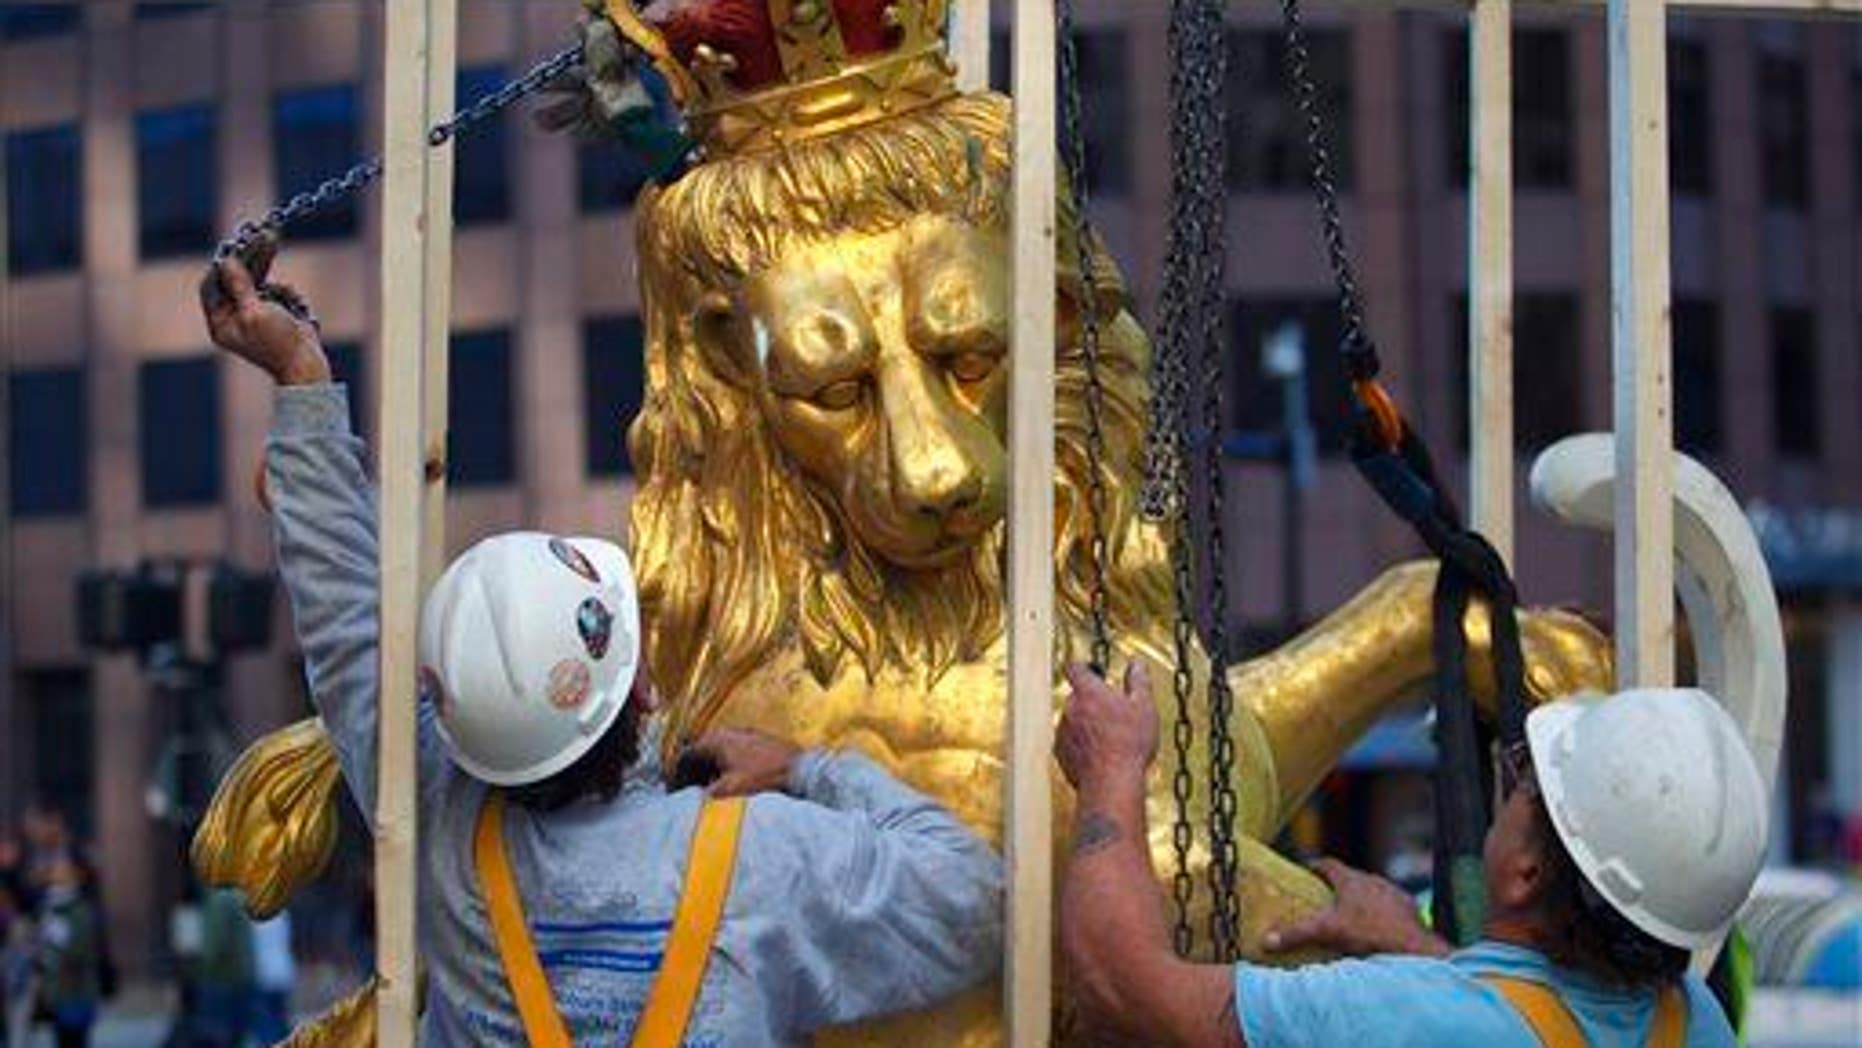 In this Sept. 14, 2014 file photo, a lion statue is removed from atop the Old State House on Washington Street in Boston.